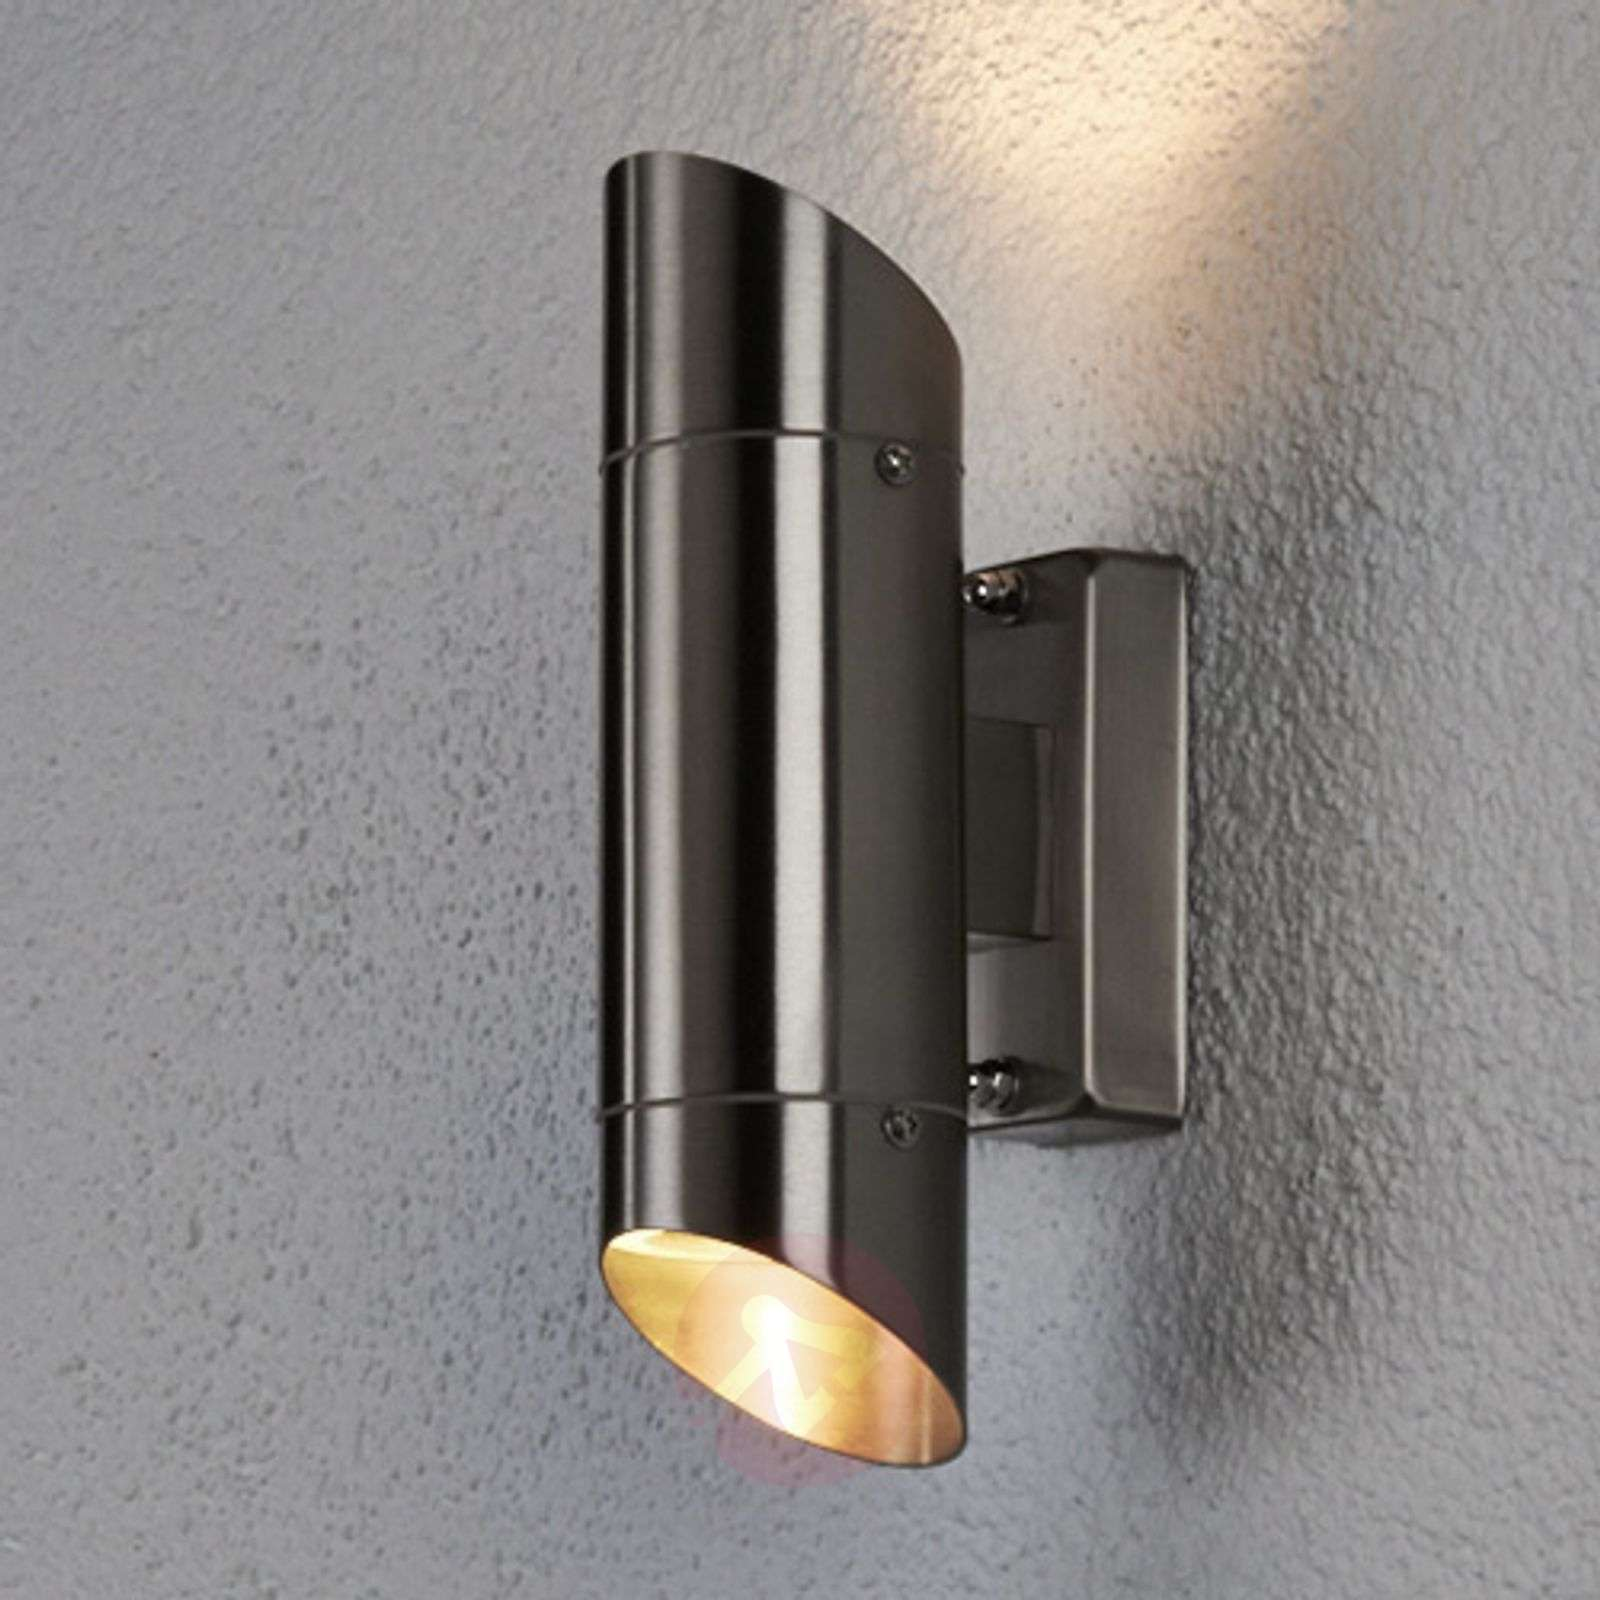 Cosia outside wall light stainless steel lights cosia outside wall light stainless steel 9630011 01 aloadofball